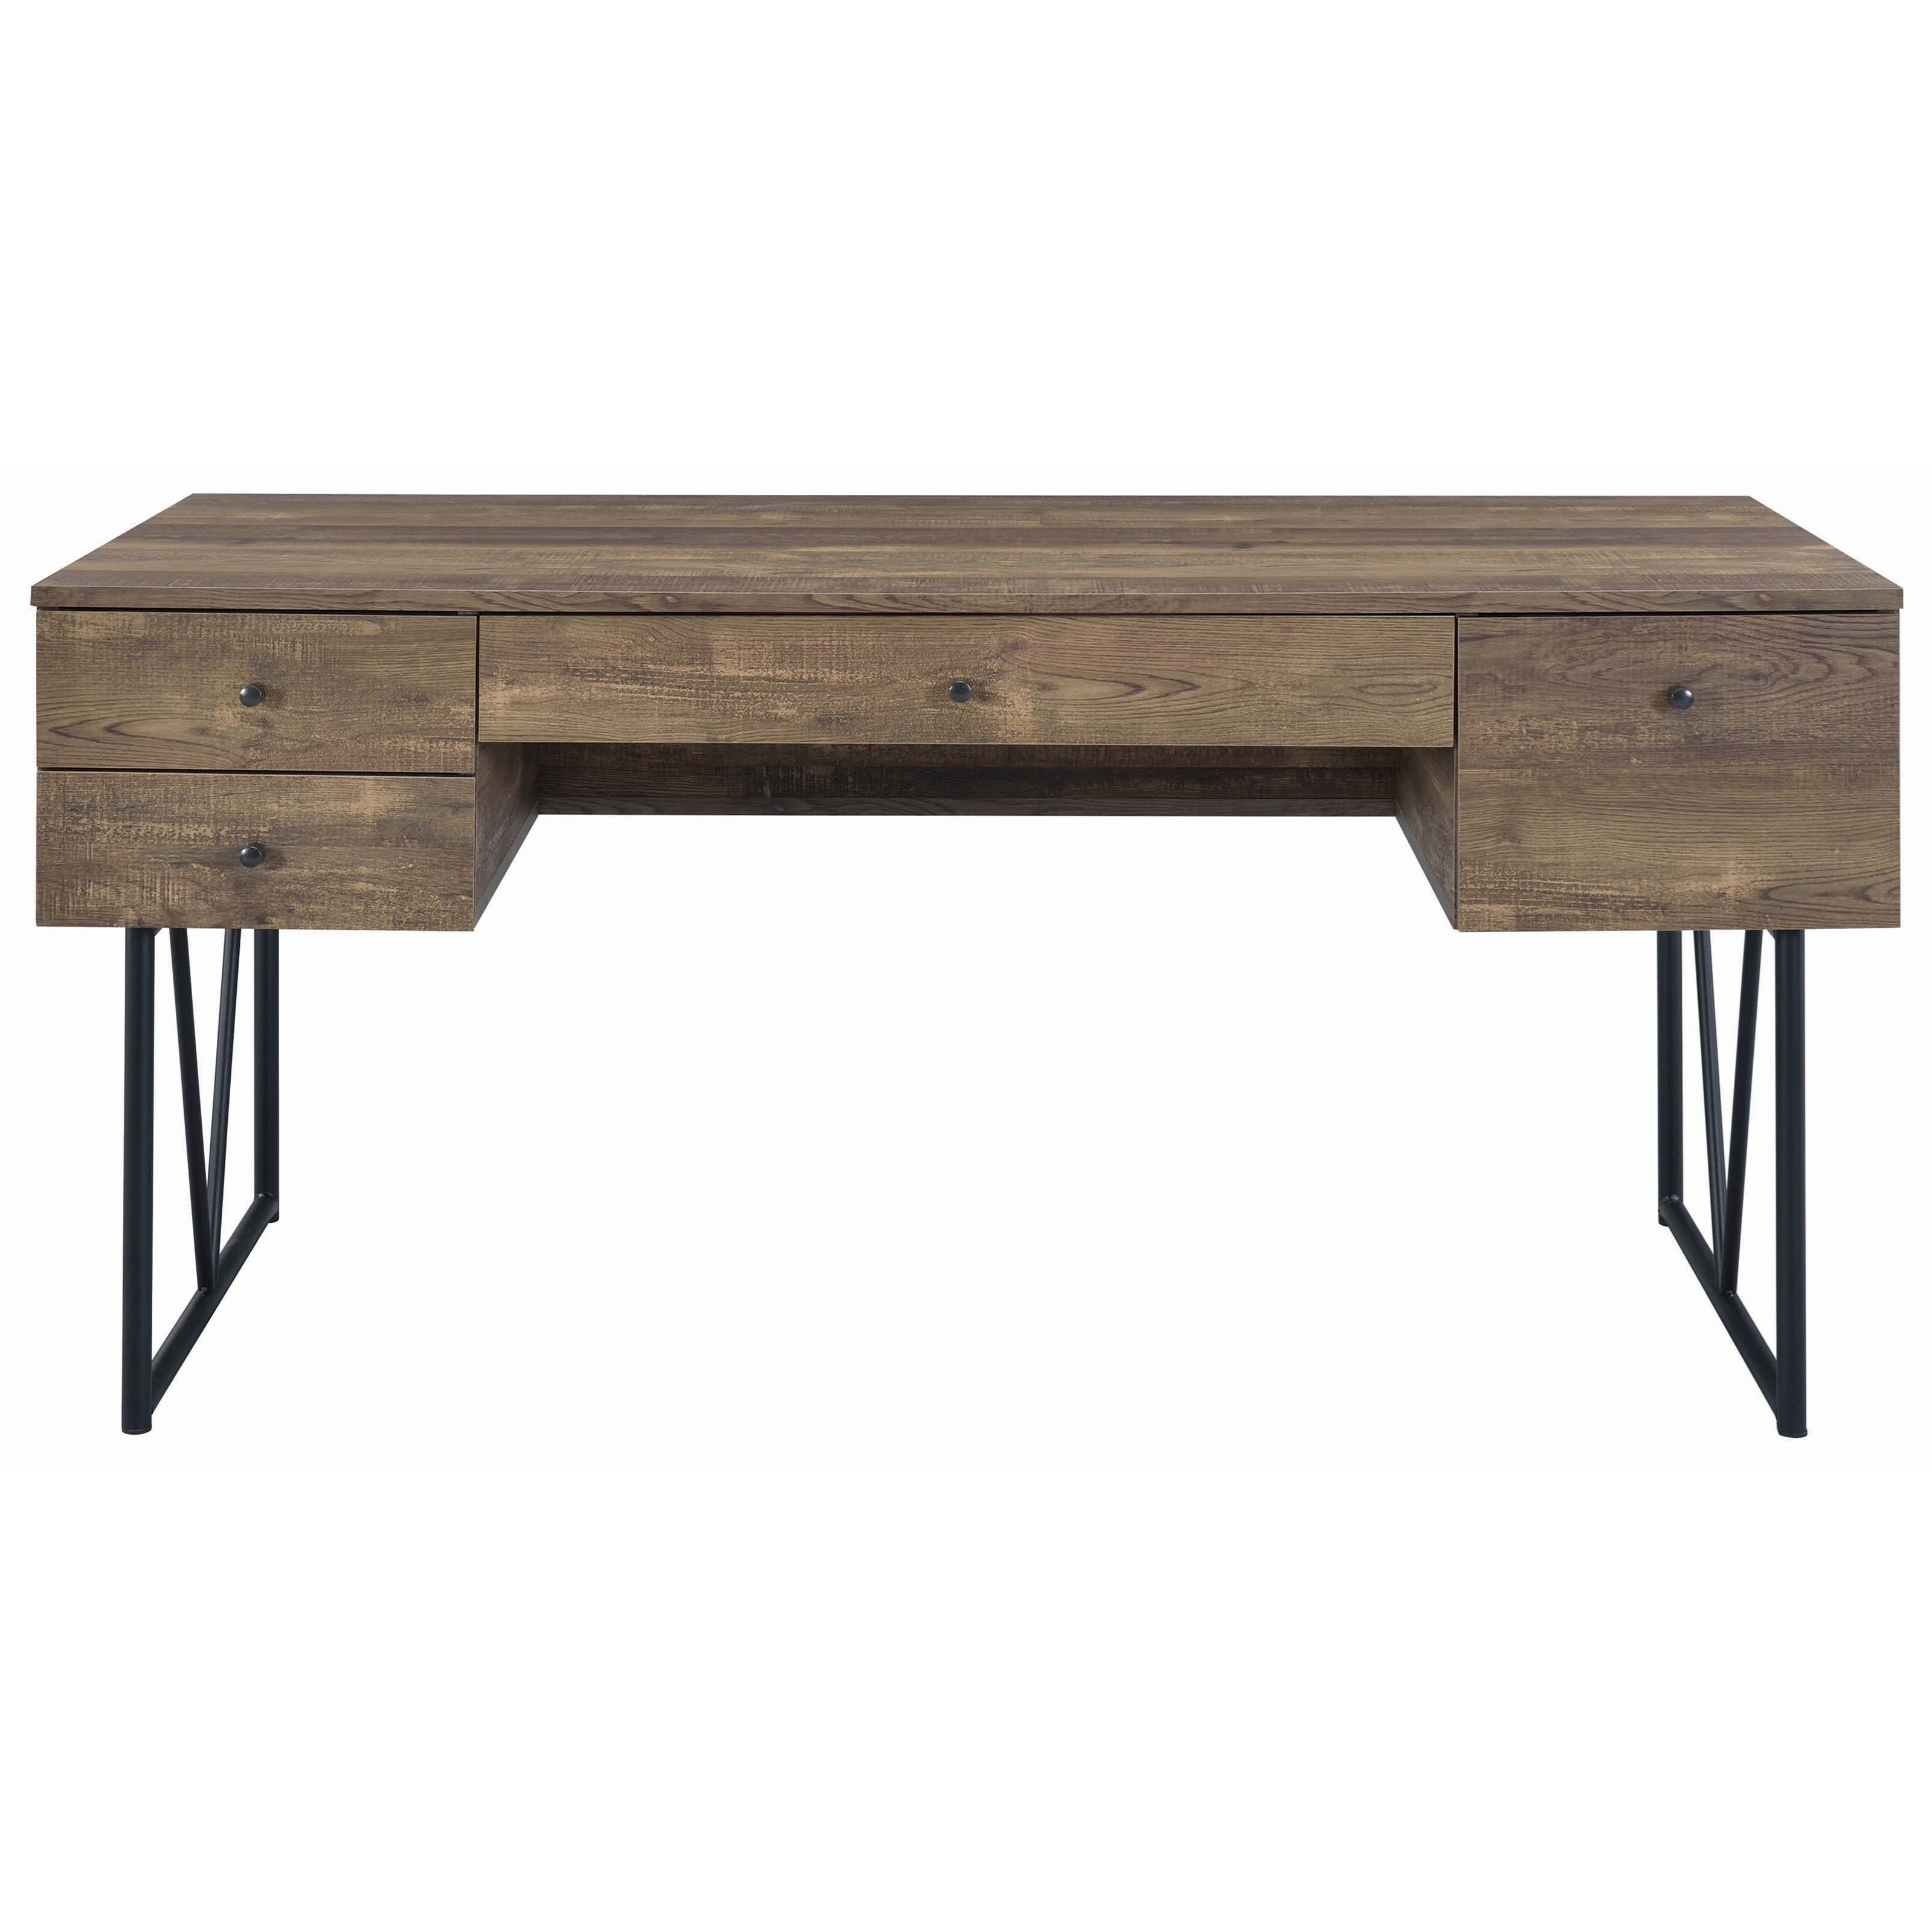 Analiese Writing Desk by Coaster at Value City Furniture